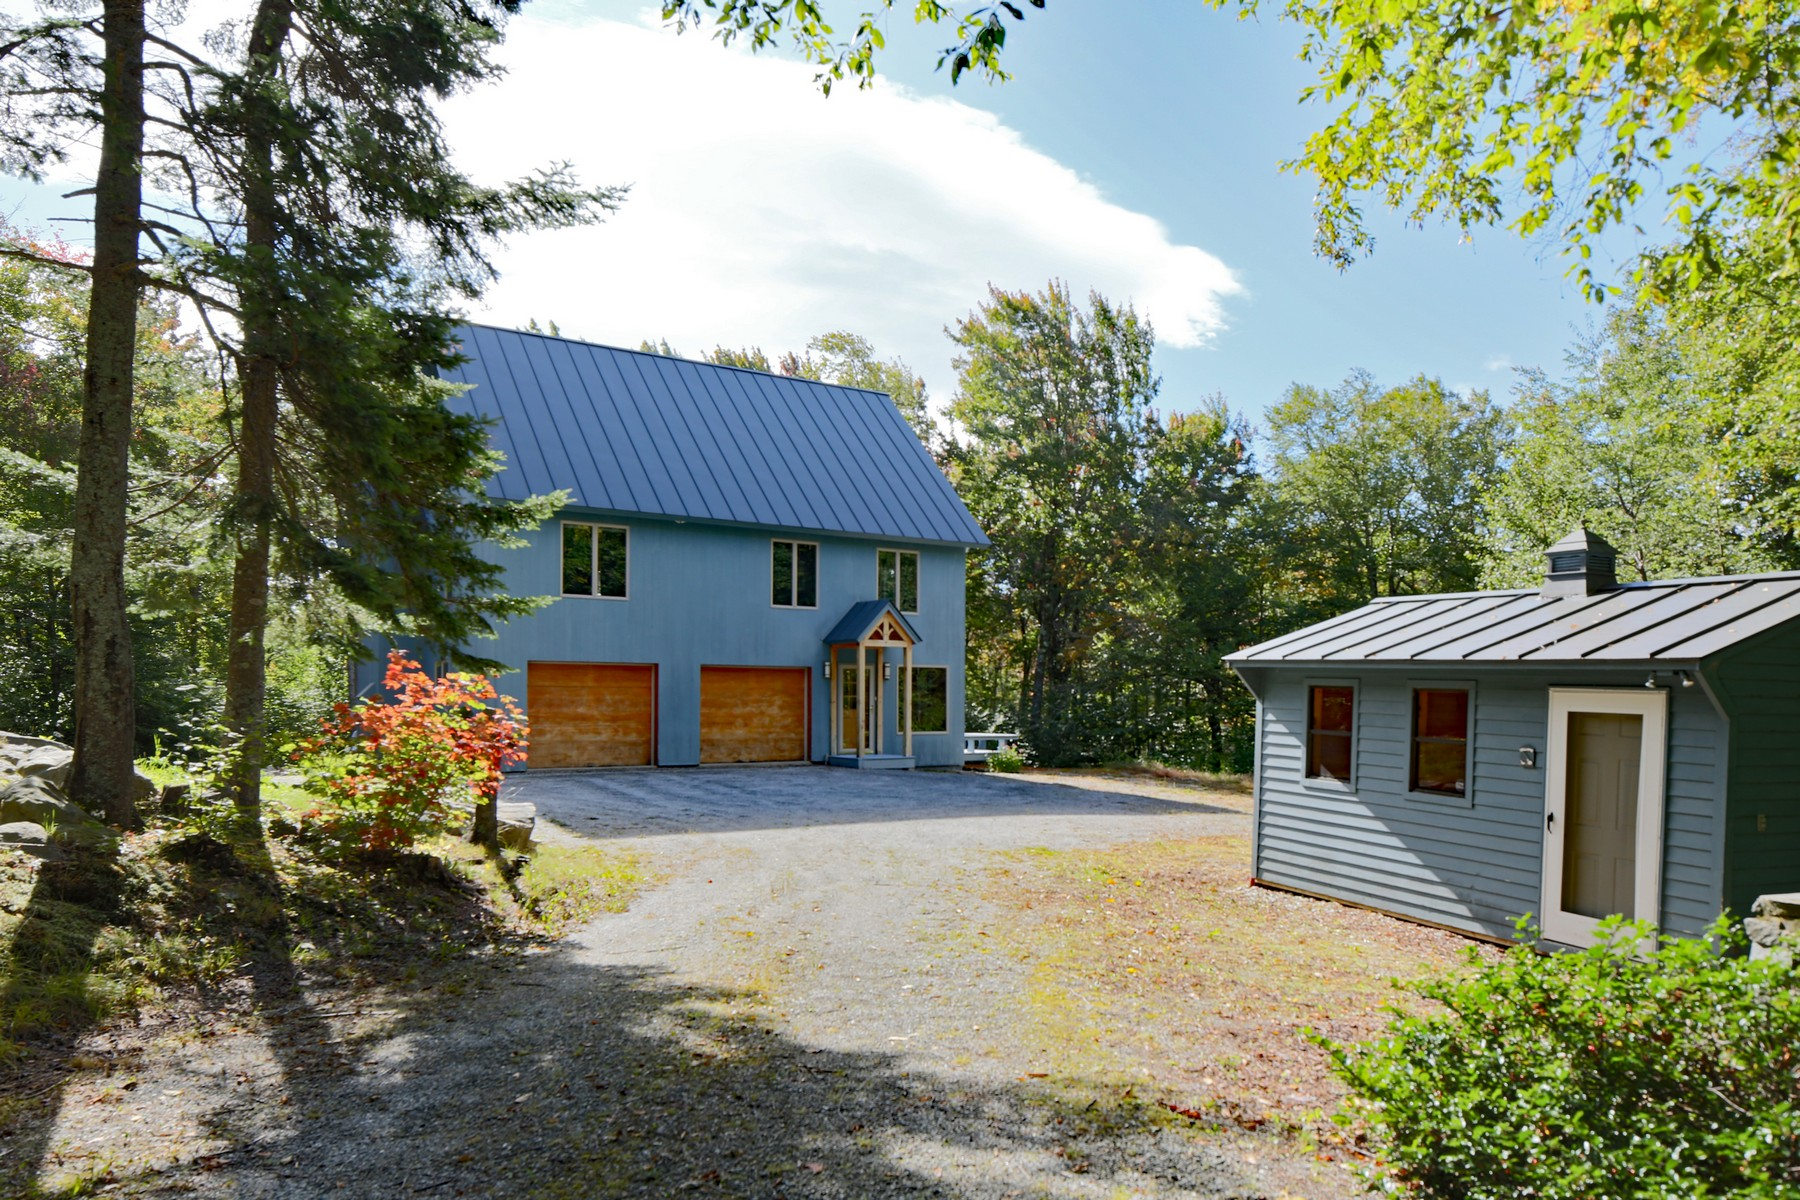 Single Family Home for Sale at Exquisite Davis Frome on 29 Acres 749 Old Weston Mountain Ludlow, Vermont, 05149 United States